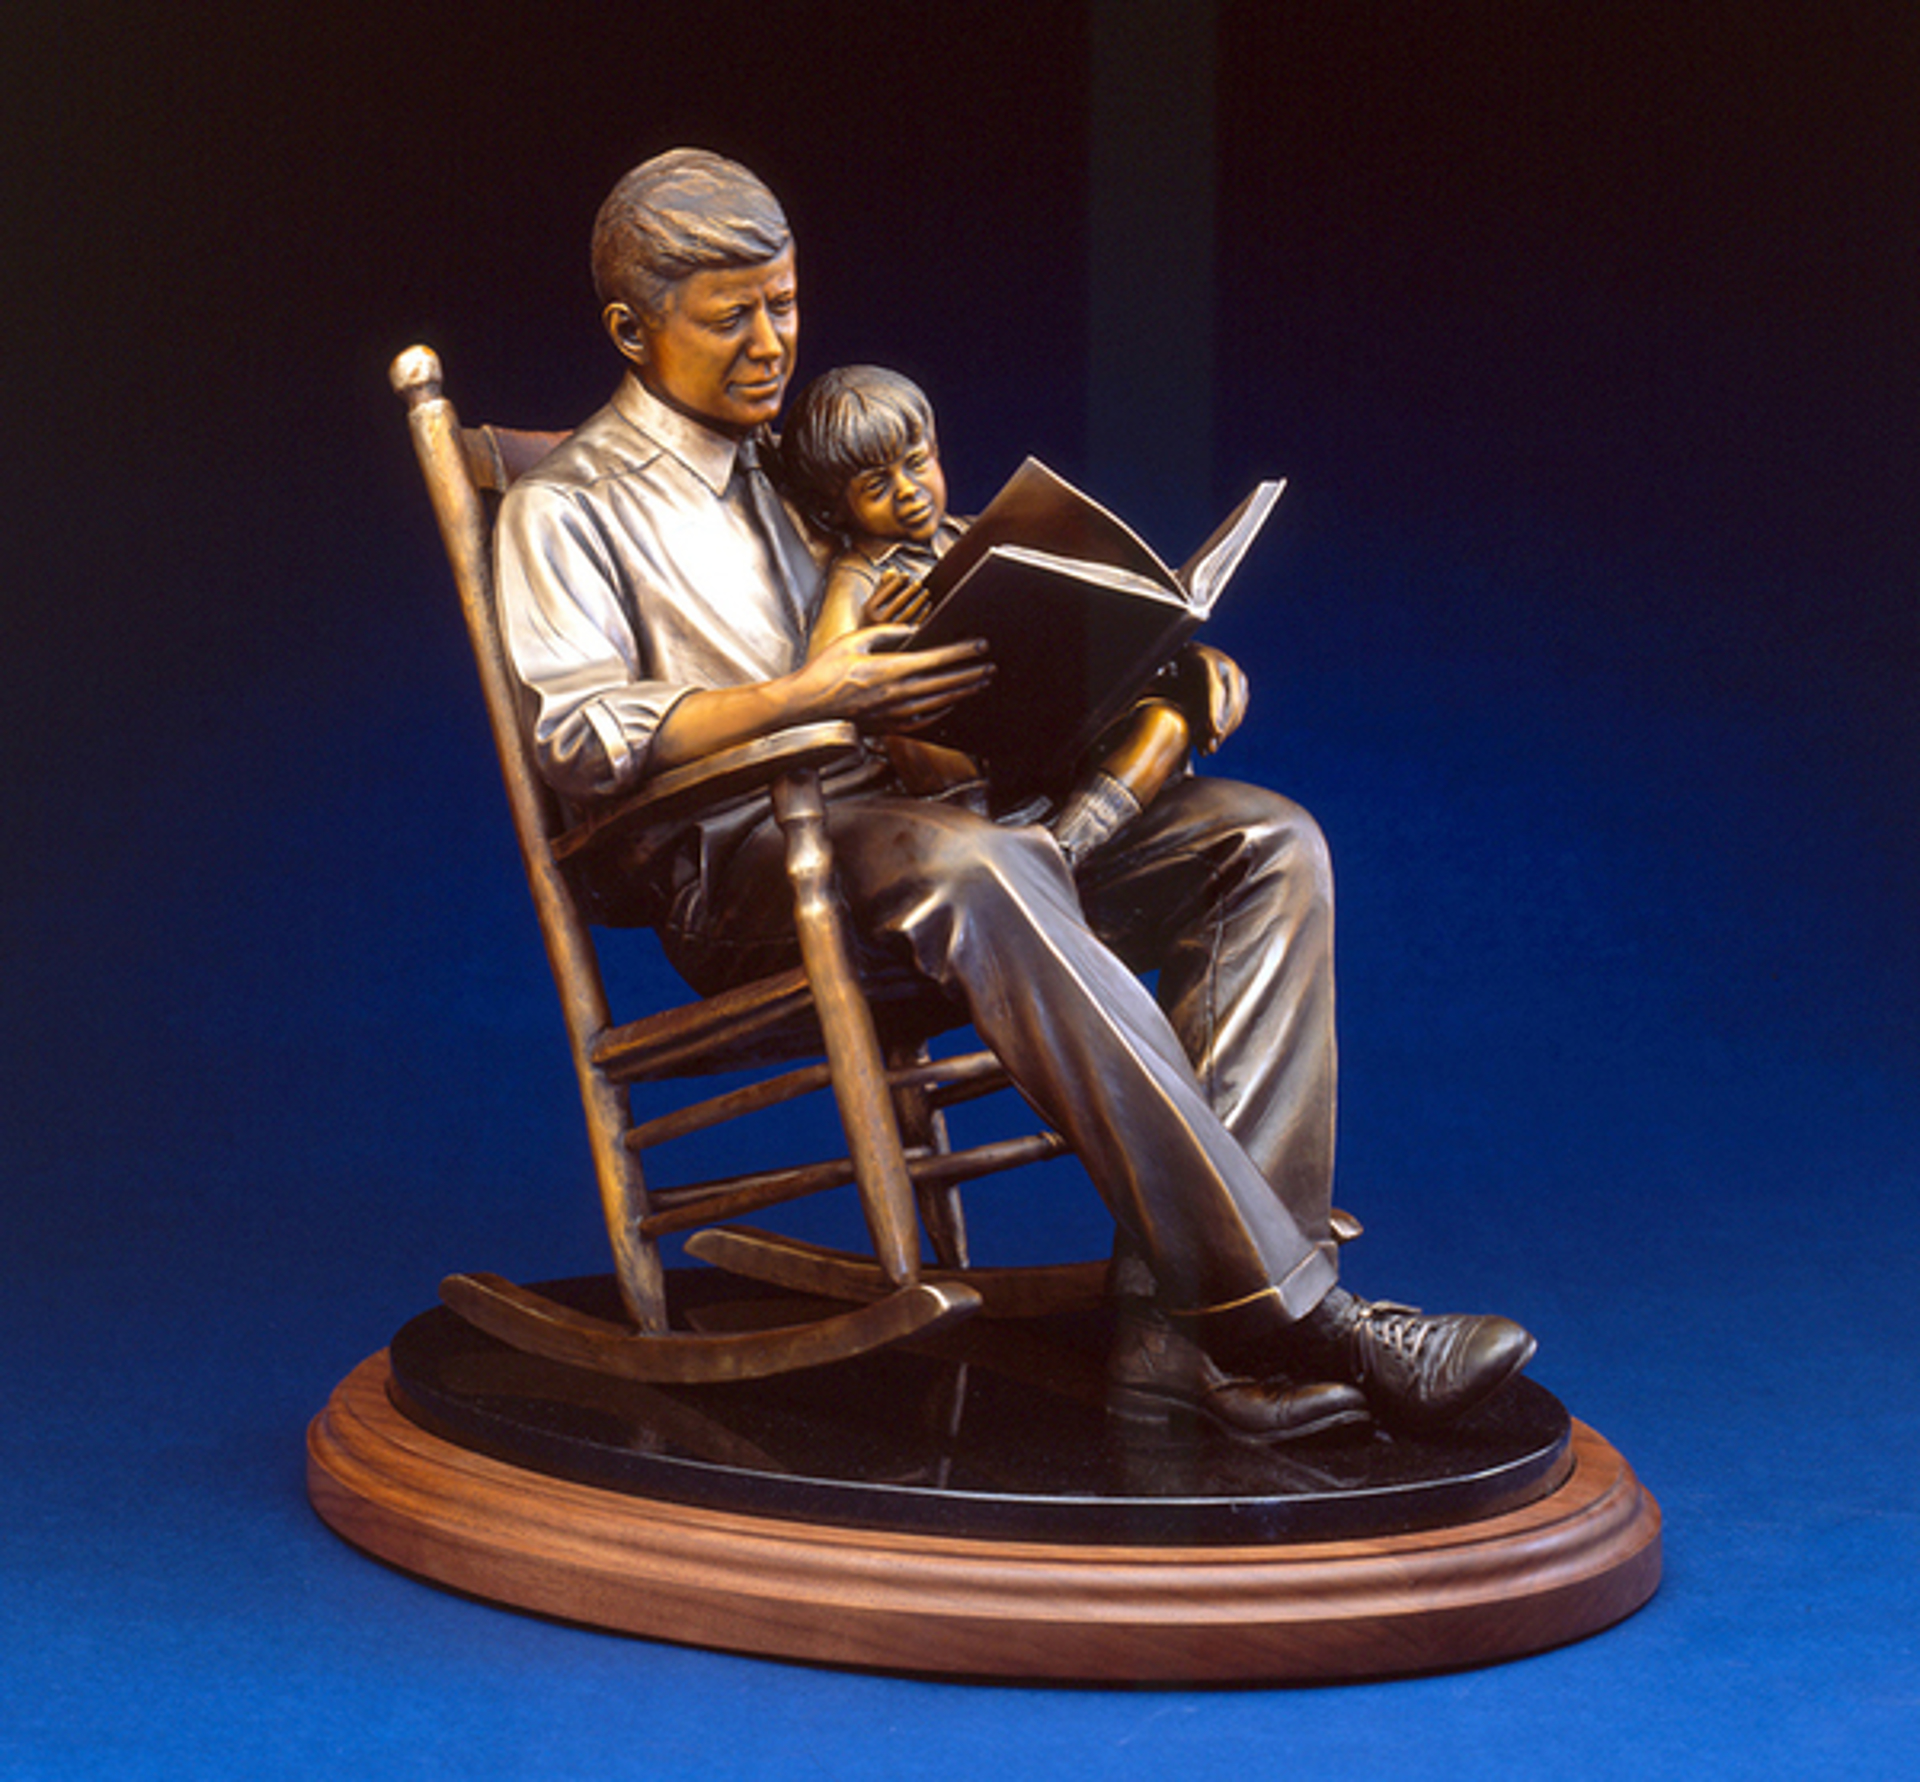 Turning The Pages by George Lundeen